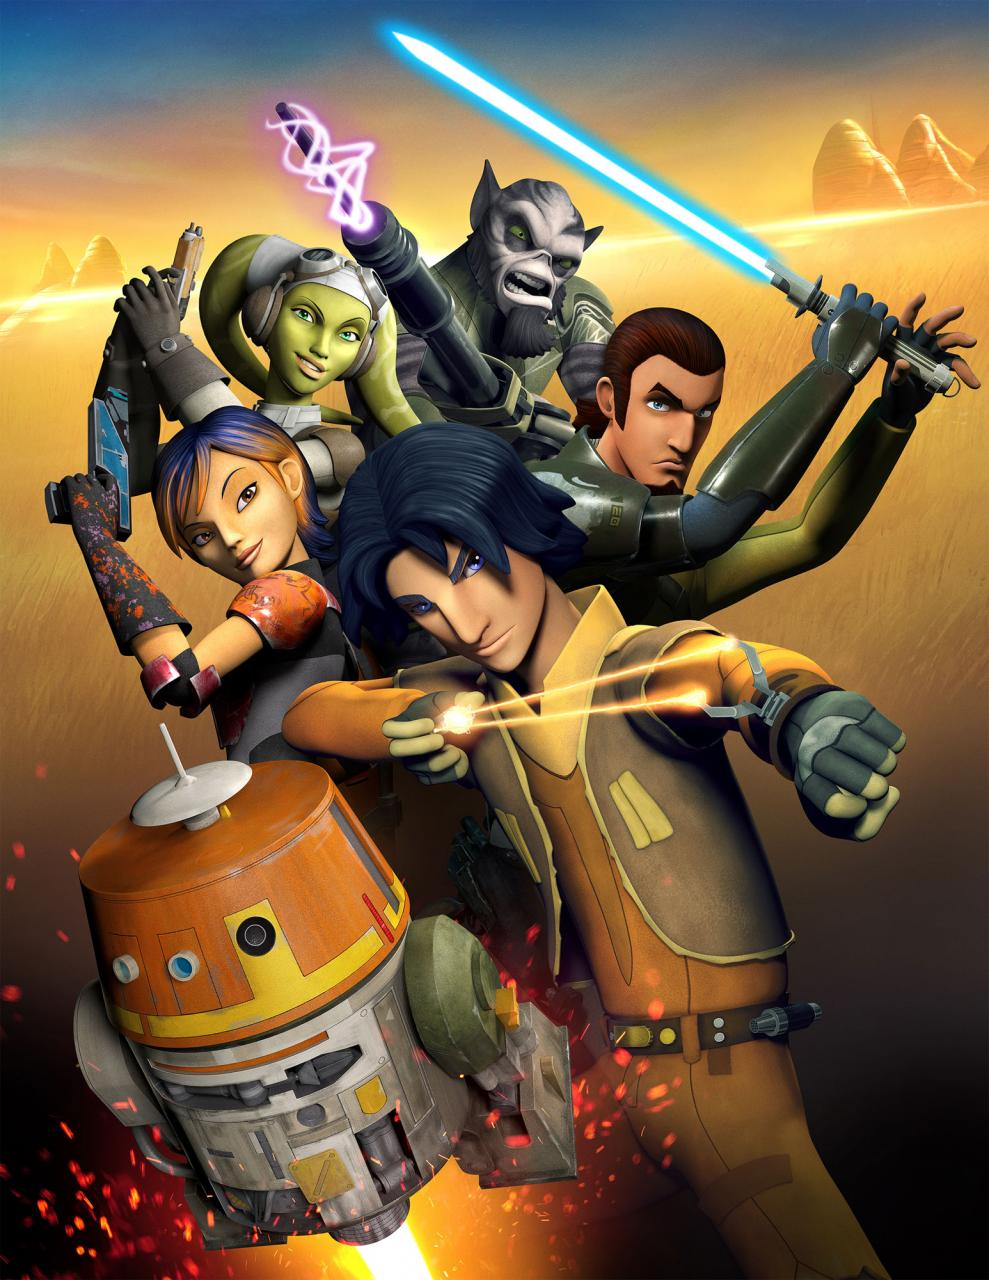 Star Wars Rebels-Sabine-PROMO PHOTOS-25AGOSTO2014